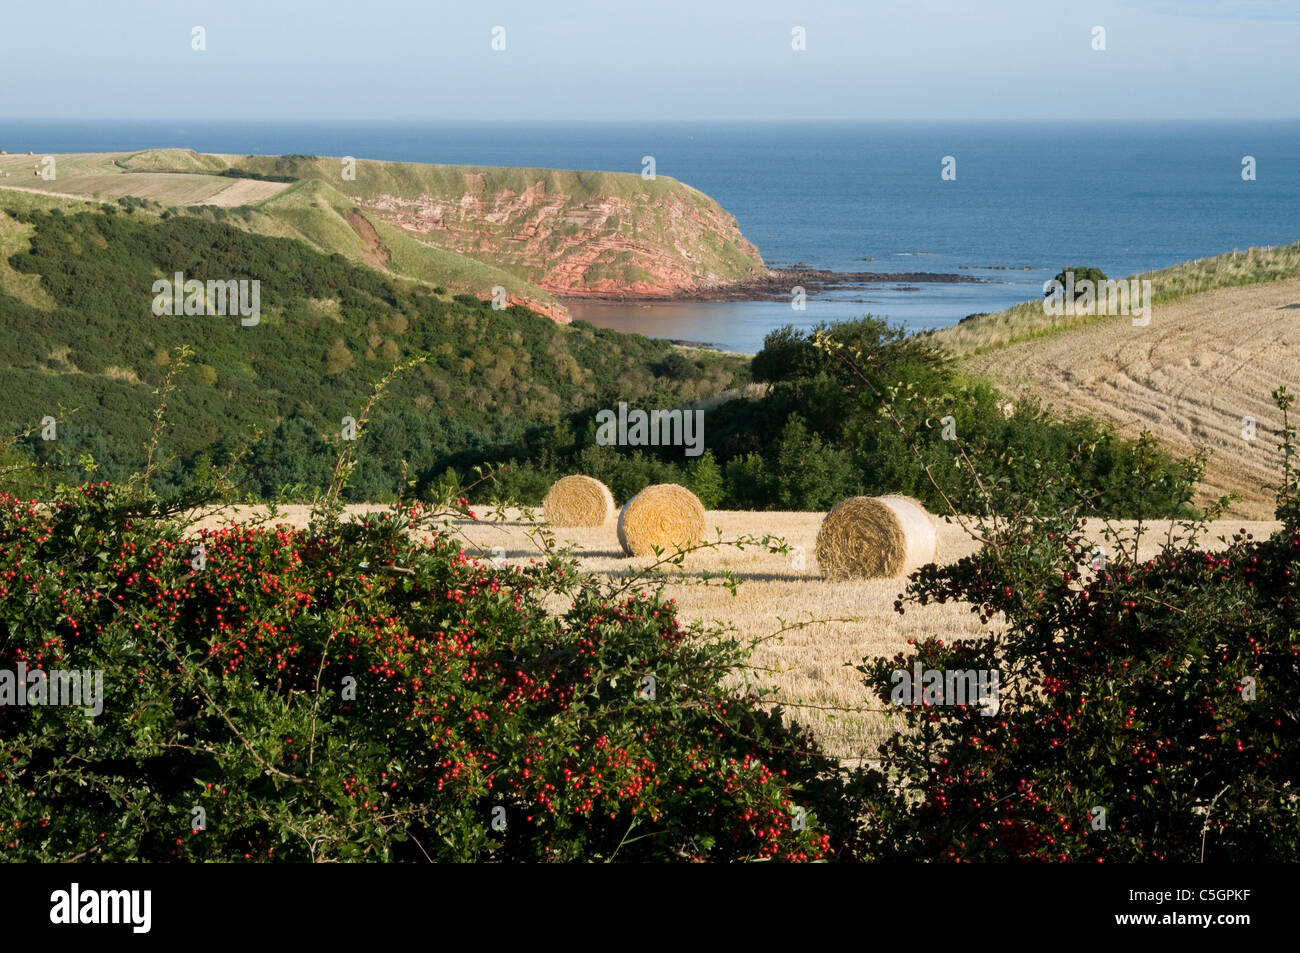 Coastal farmland with haybales hedgerows and cliffs near St Abbs - Stock Image